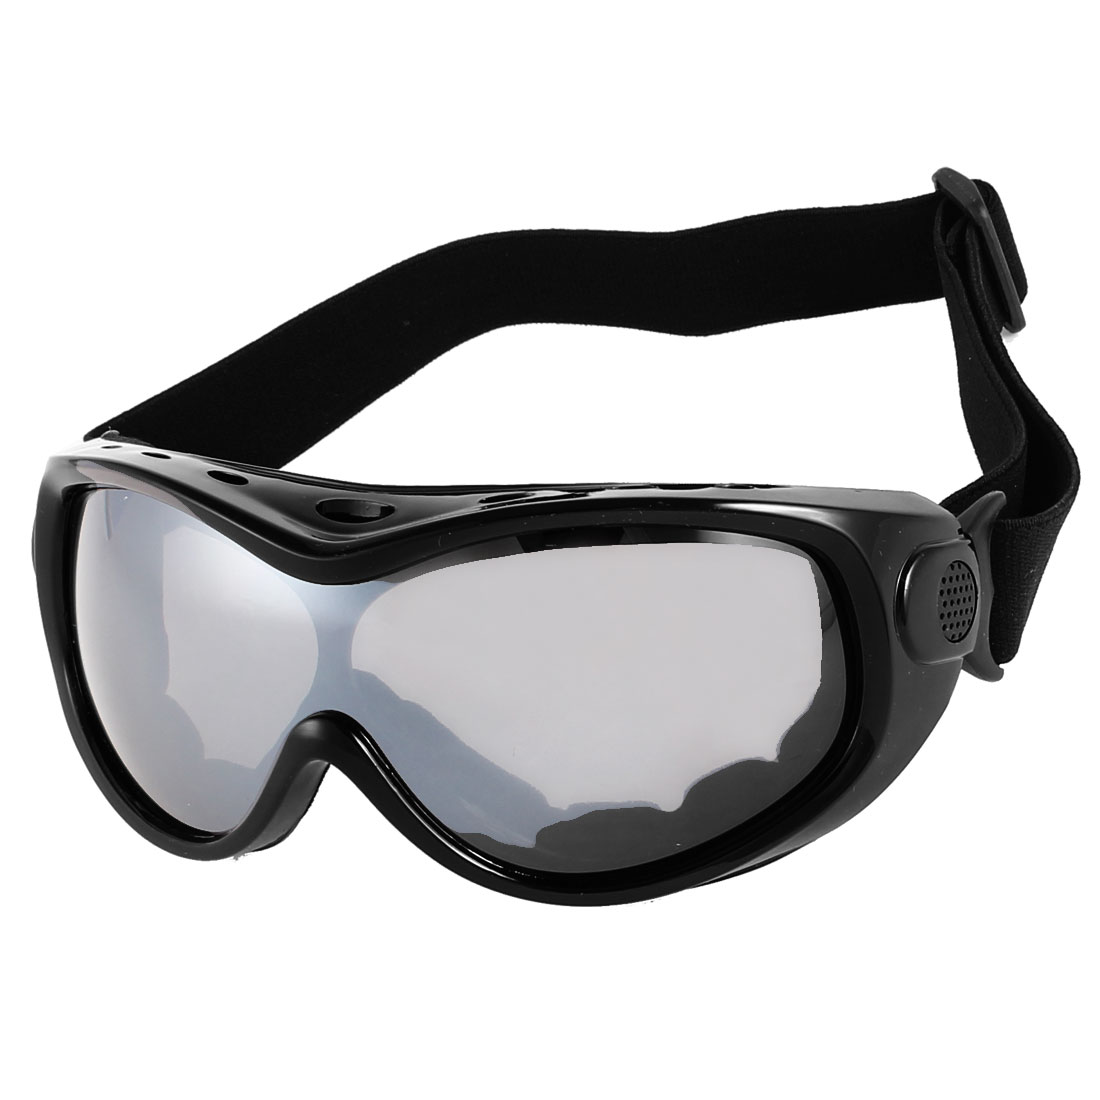 Full Rim Wide Angle Motorcycle Ski Snowboard Goggles for Ladies Men